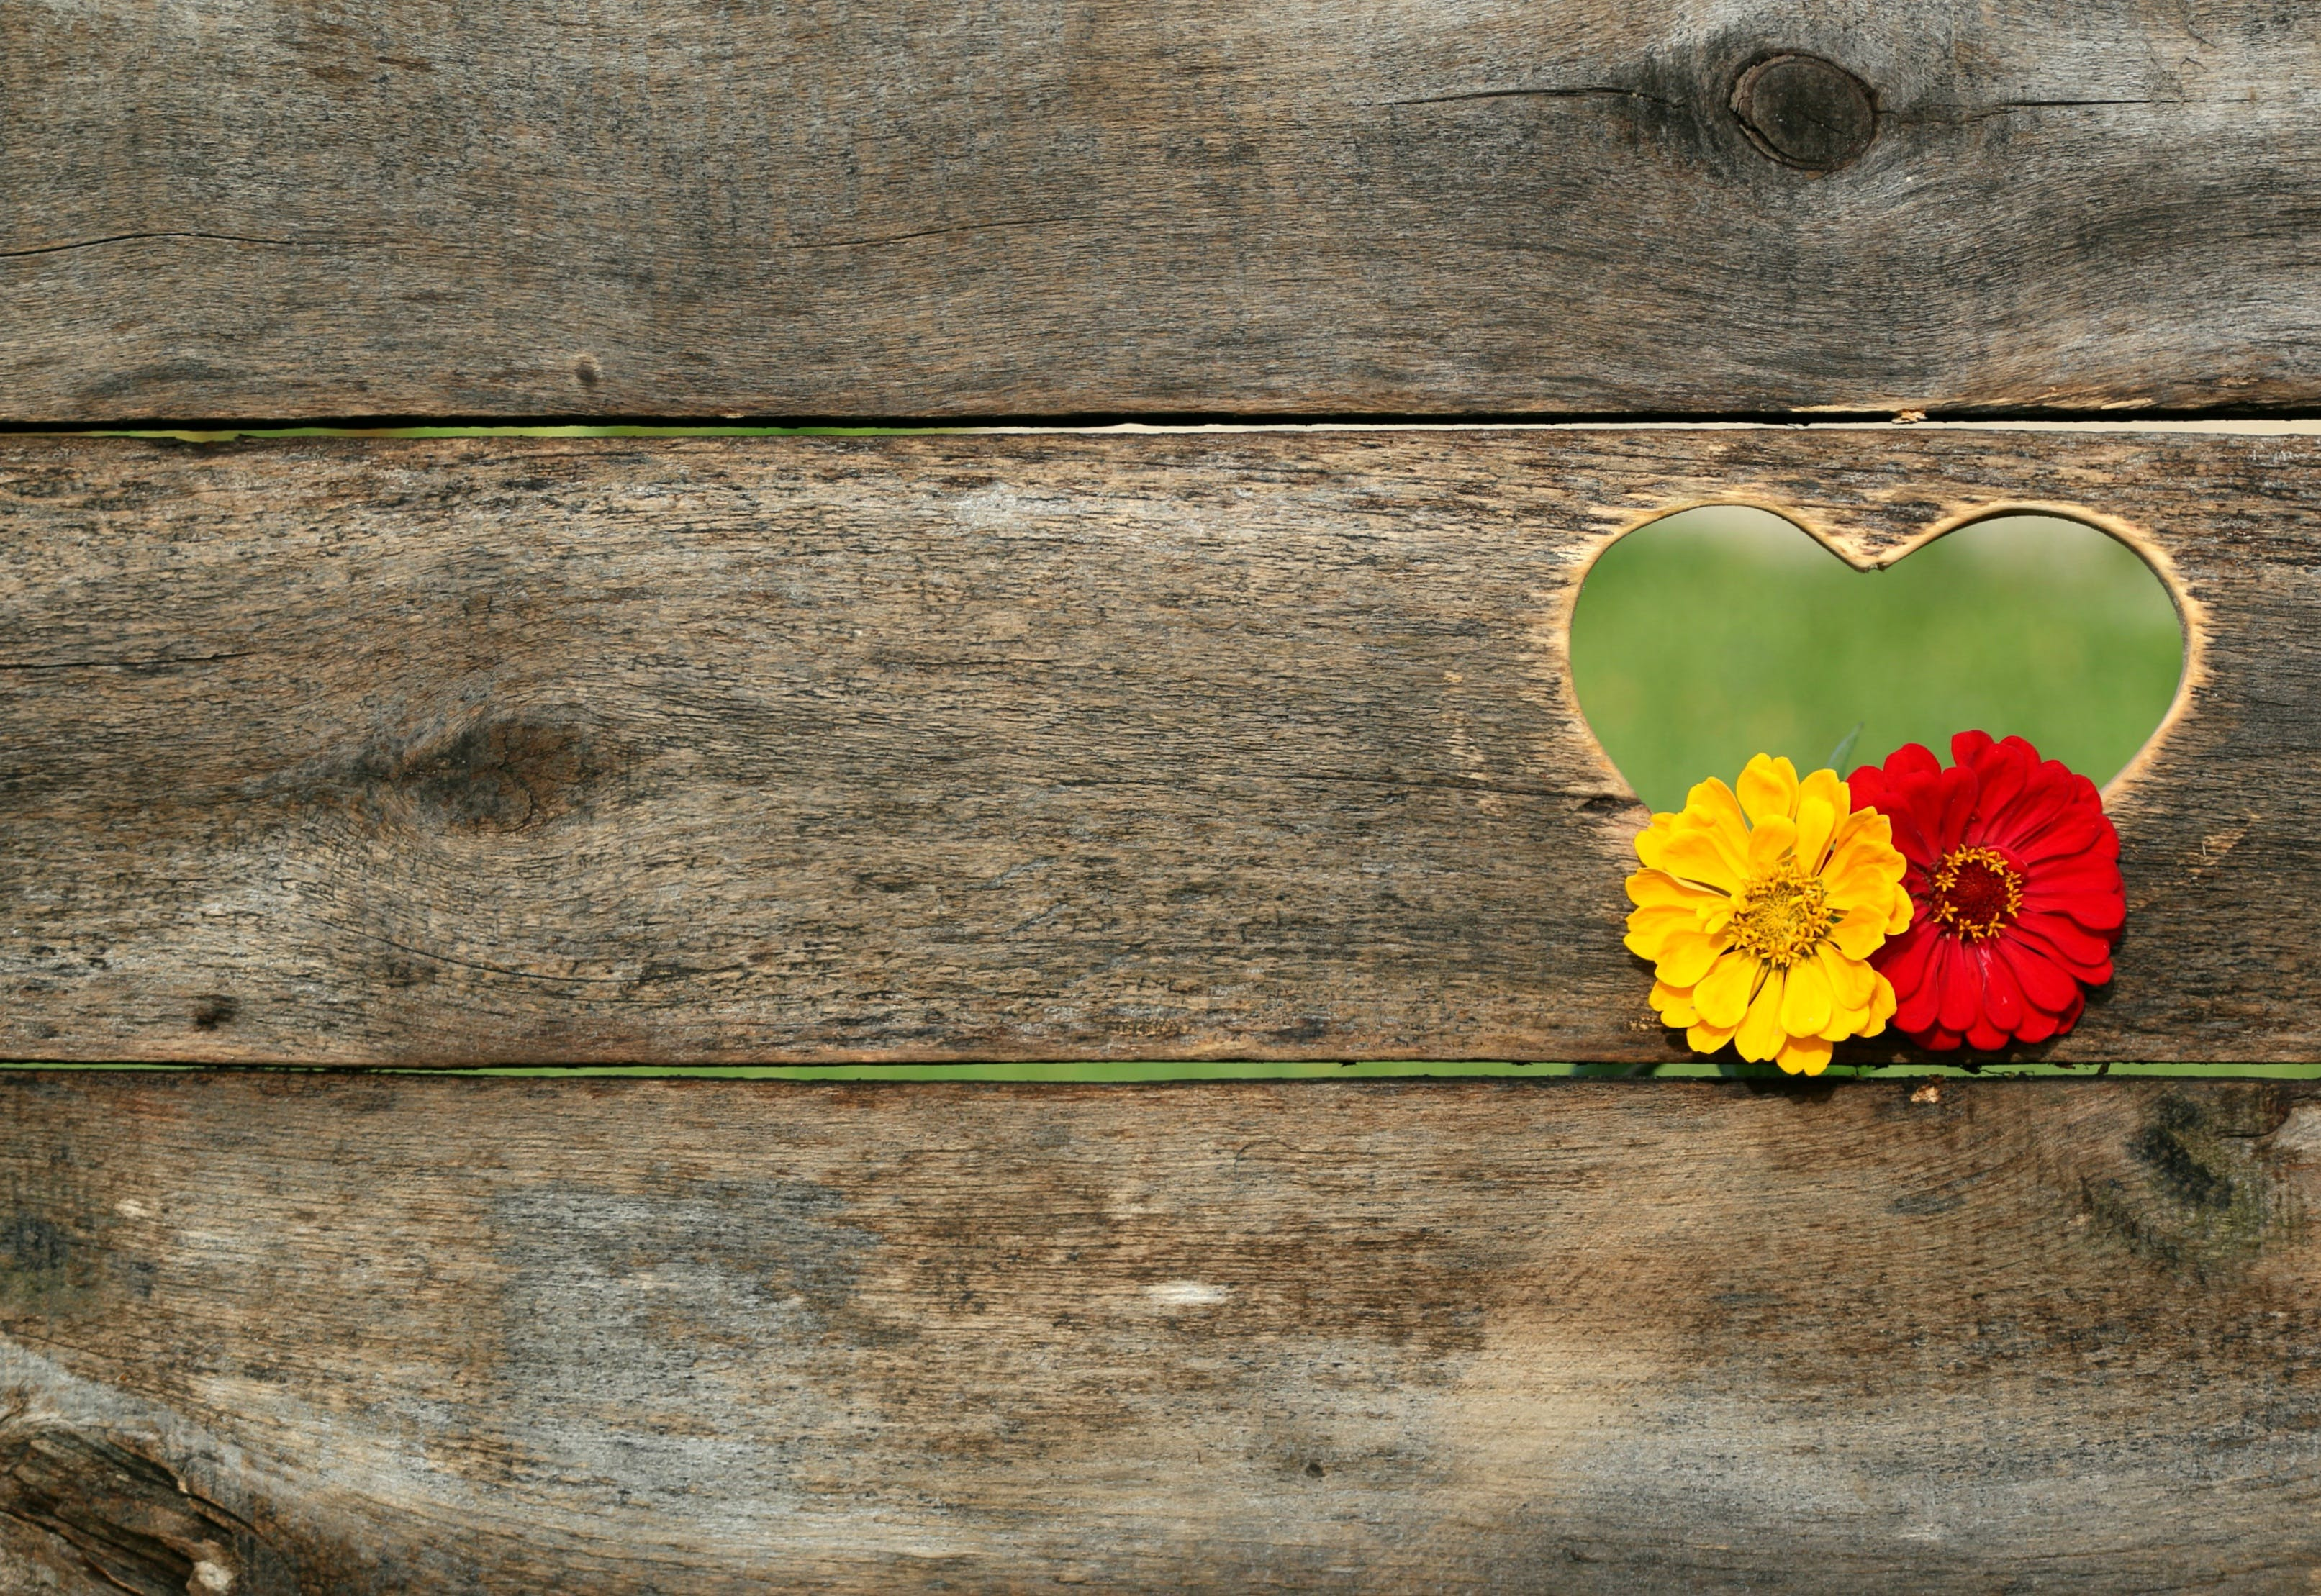 Yellow and Red Flower on Brown Heart Wooden Carved Panel